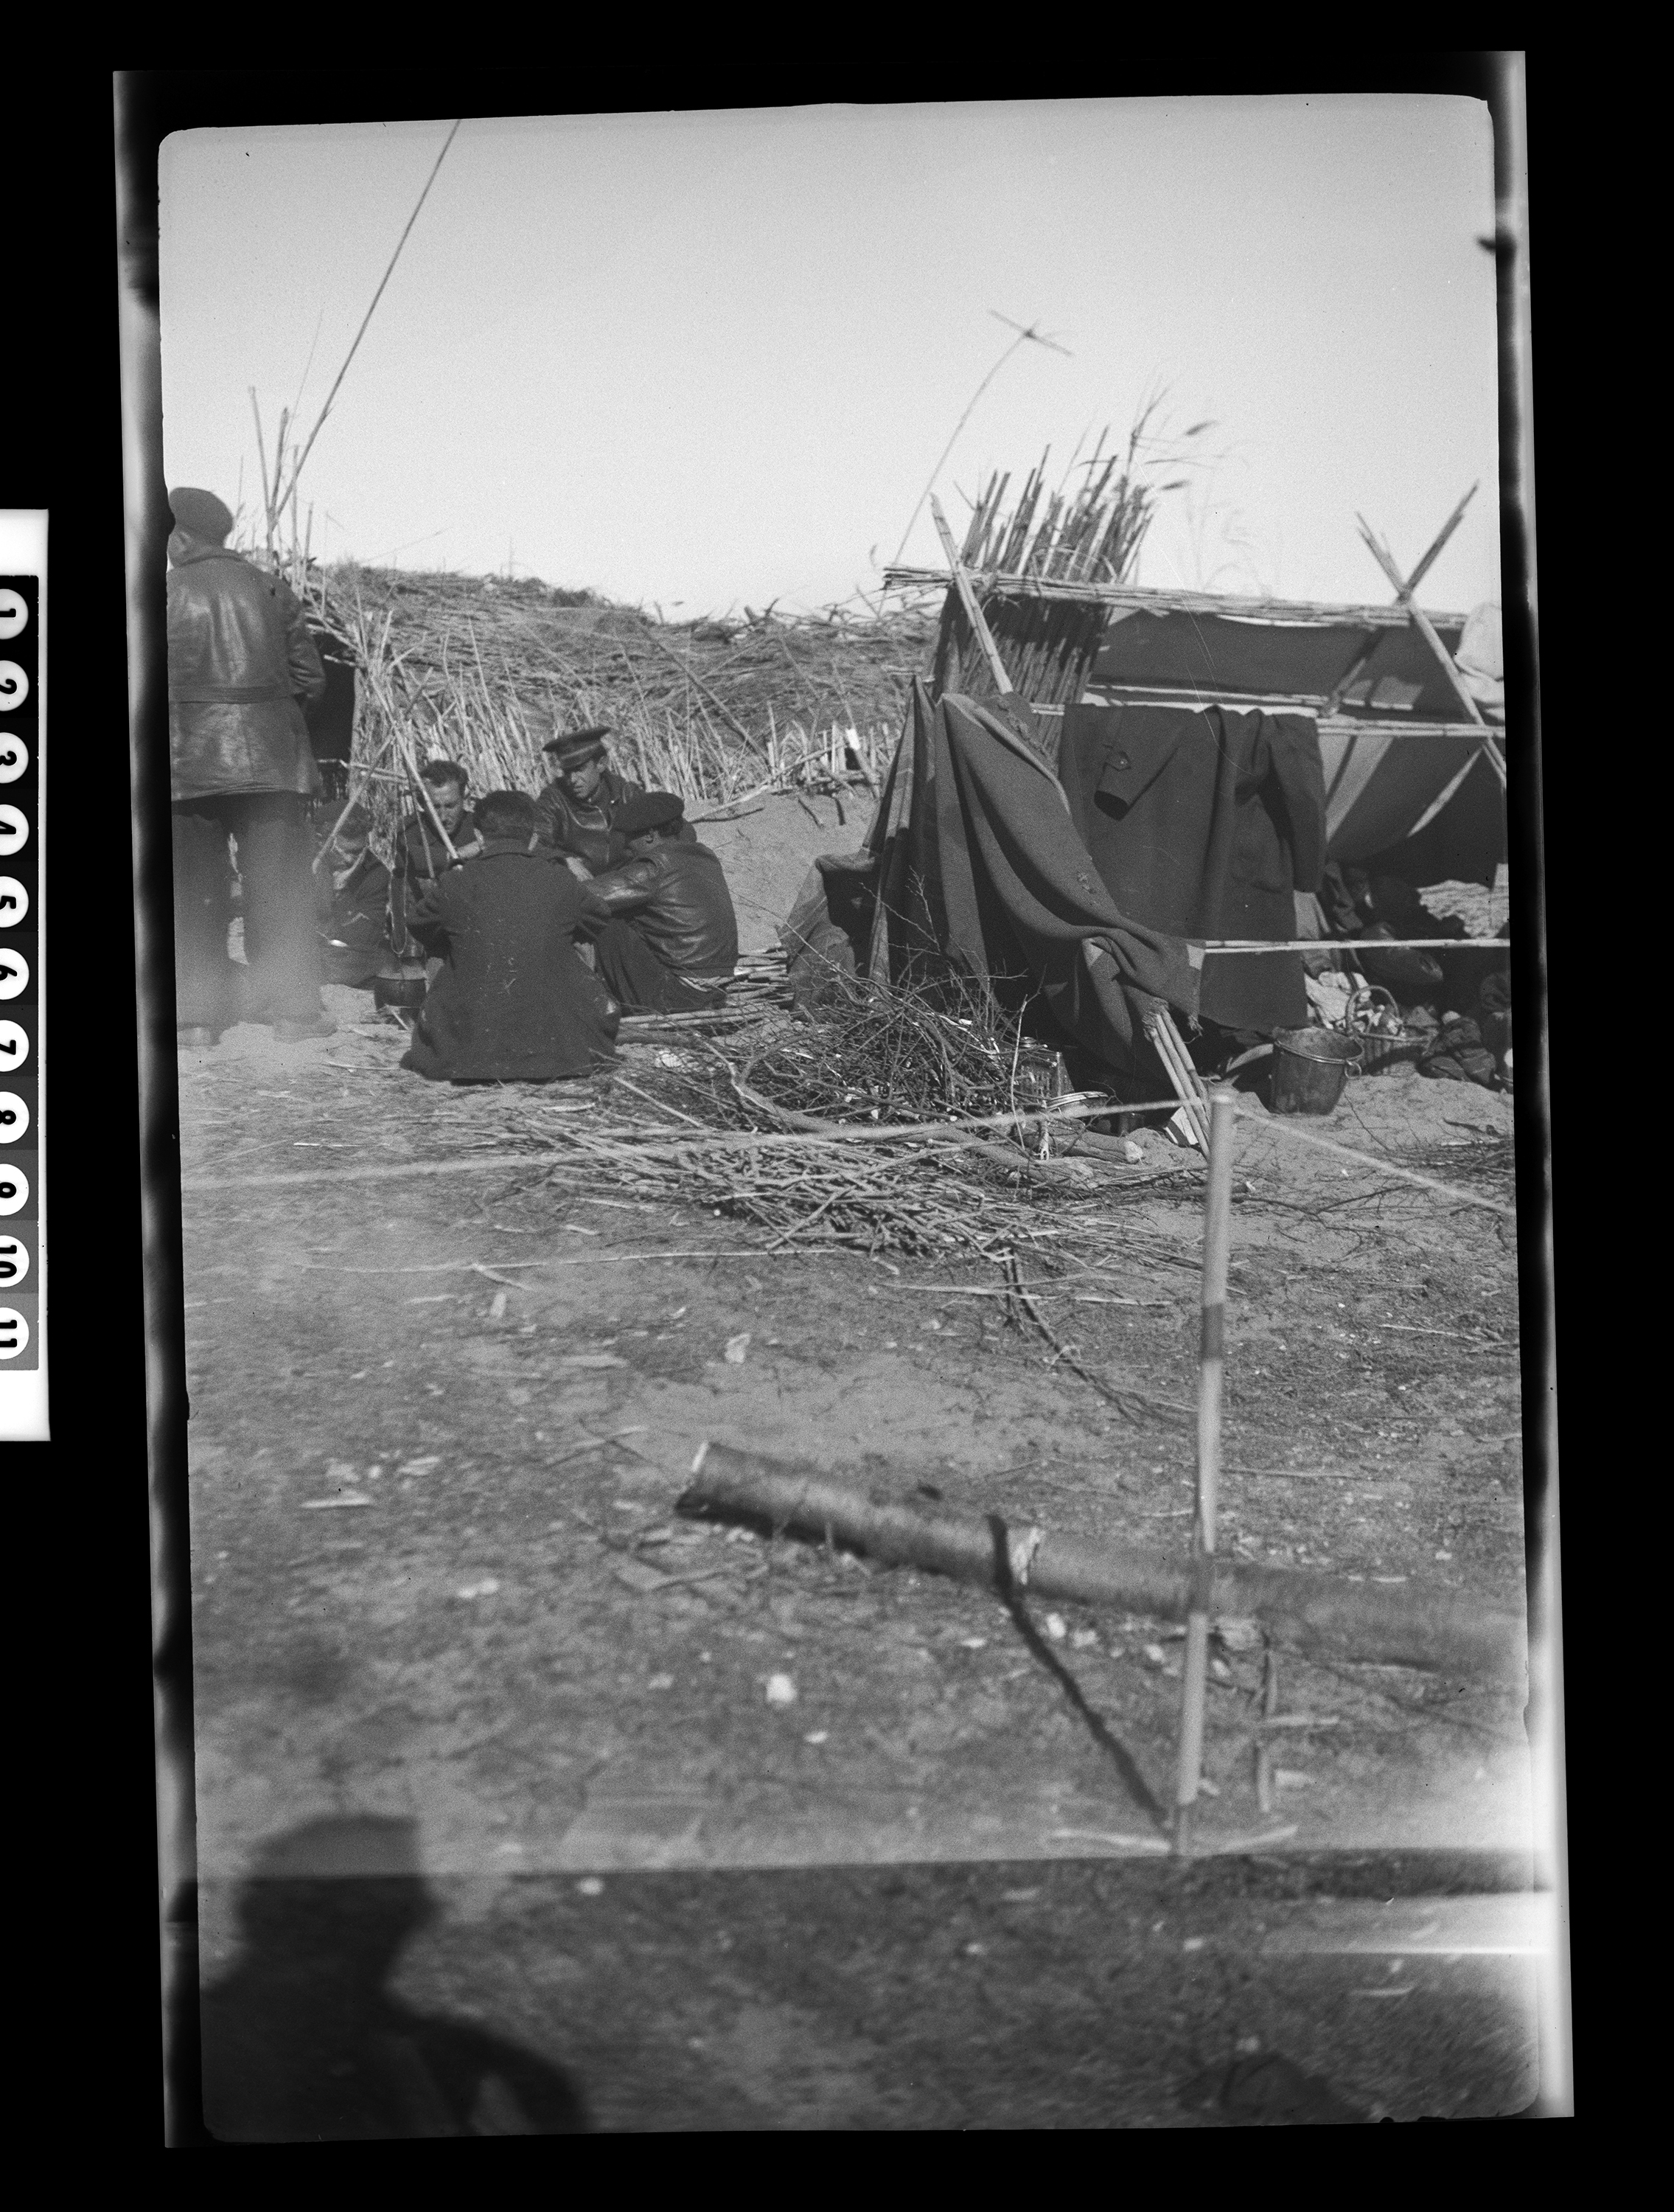 KFC2782N. Spain, tour of combat areas [photograph taken during Joseph P. Kennedy, Jr.'s travels in Spain at the time of the Spanish Civil War]. 27 February 1939 1 negative (black-and-white; 2 1/4 x 3 1/2 inches (6 x 9 cm); film/plastic: nitrate) © John F. Kennedy Library Foundation